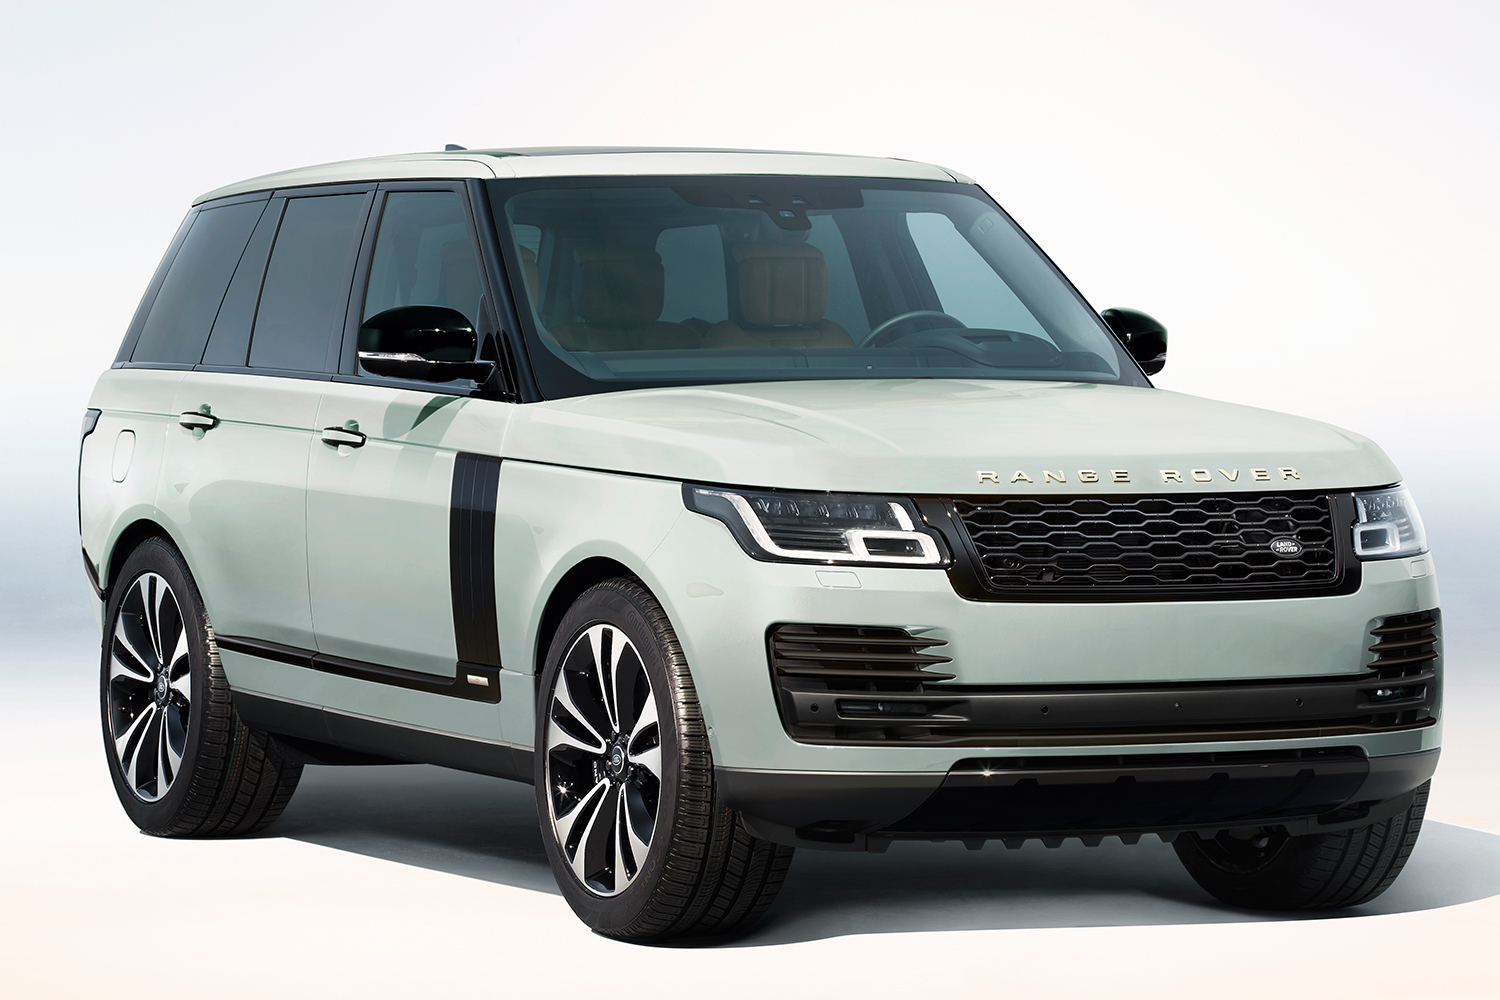 Range Rover Fifty SUV in Davos White